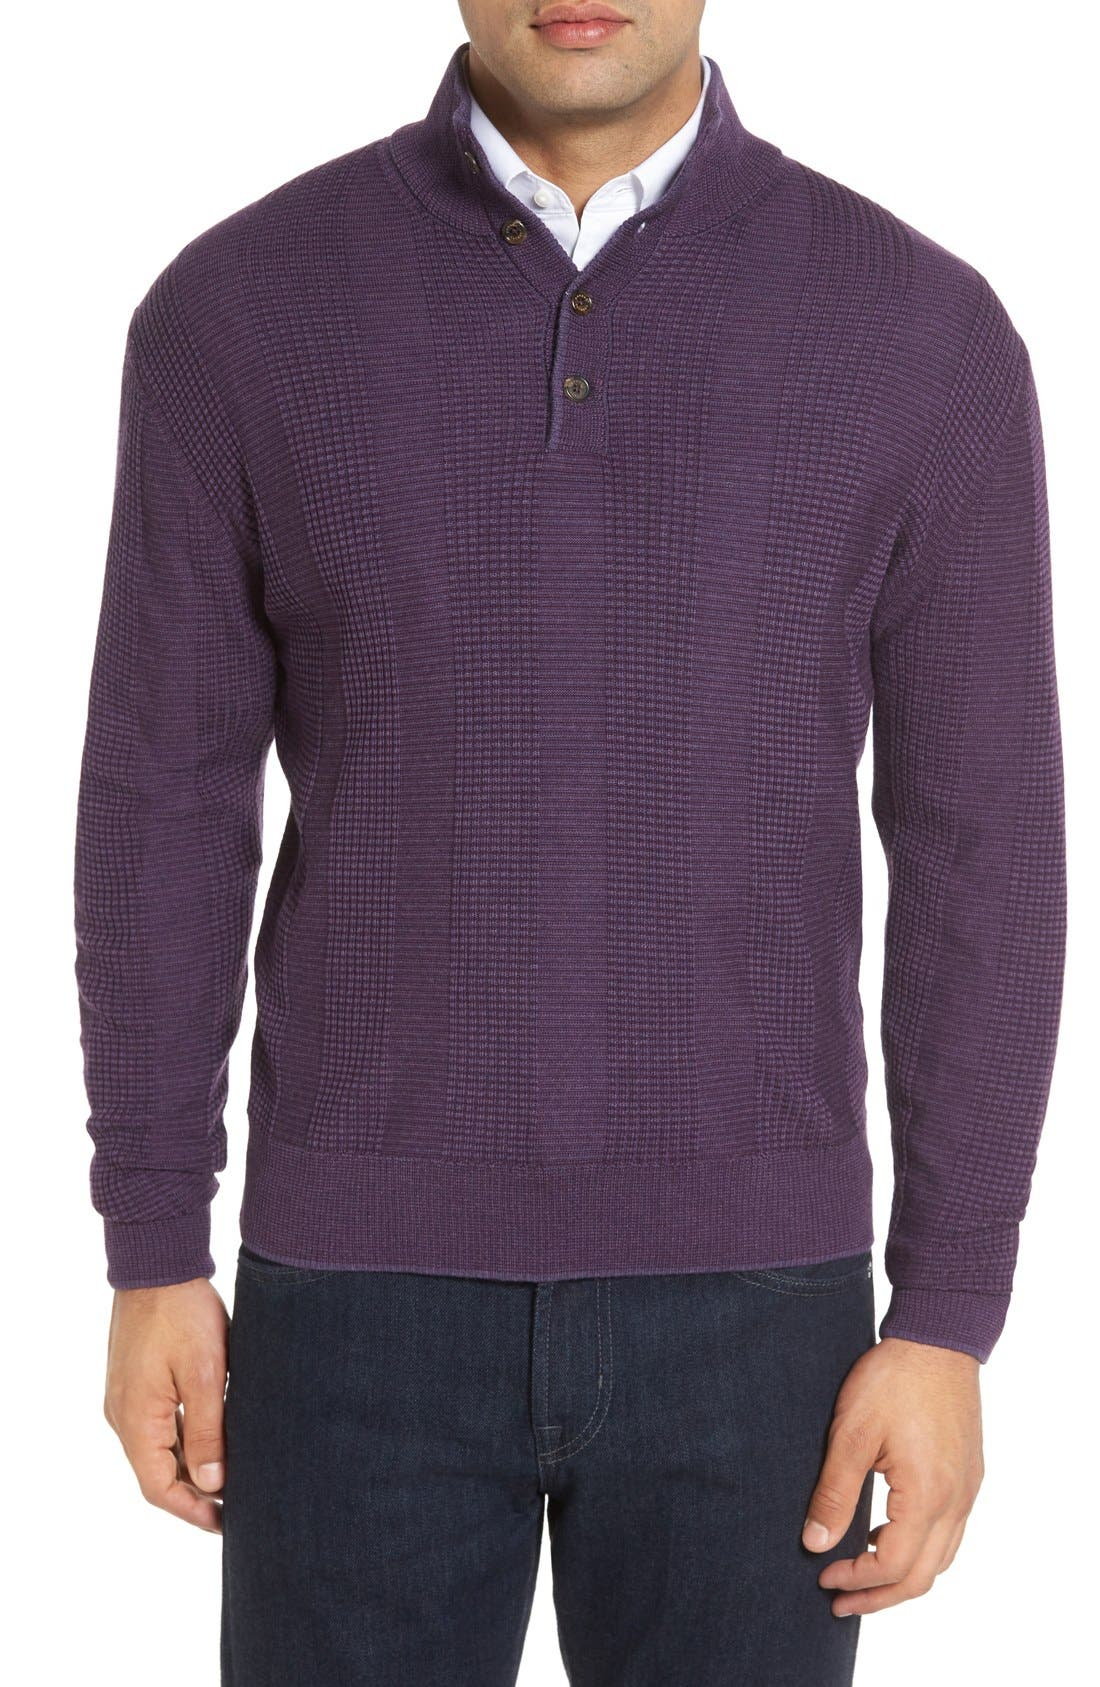 Robert Talbott 'Legacy Collection' Mock Neck Wool Sweater